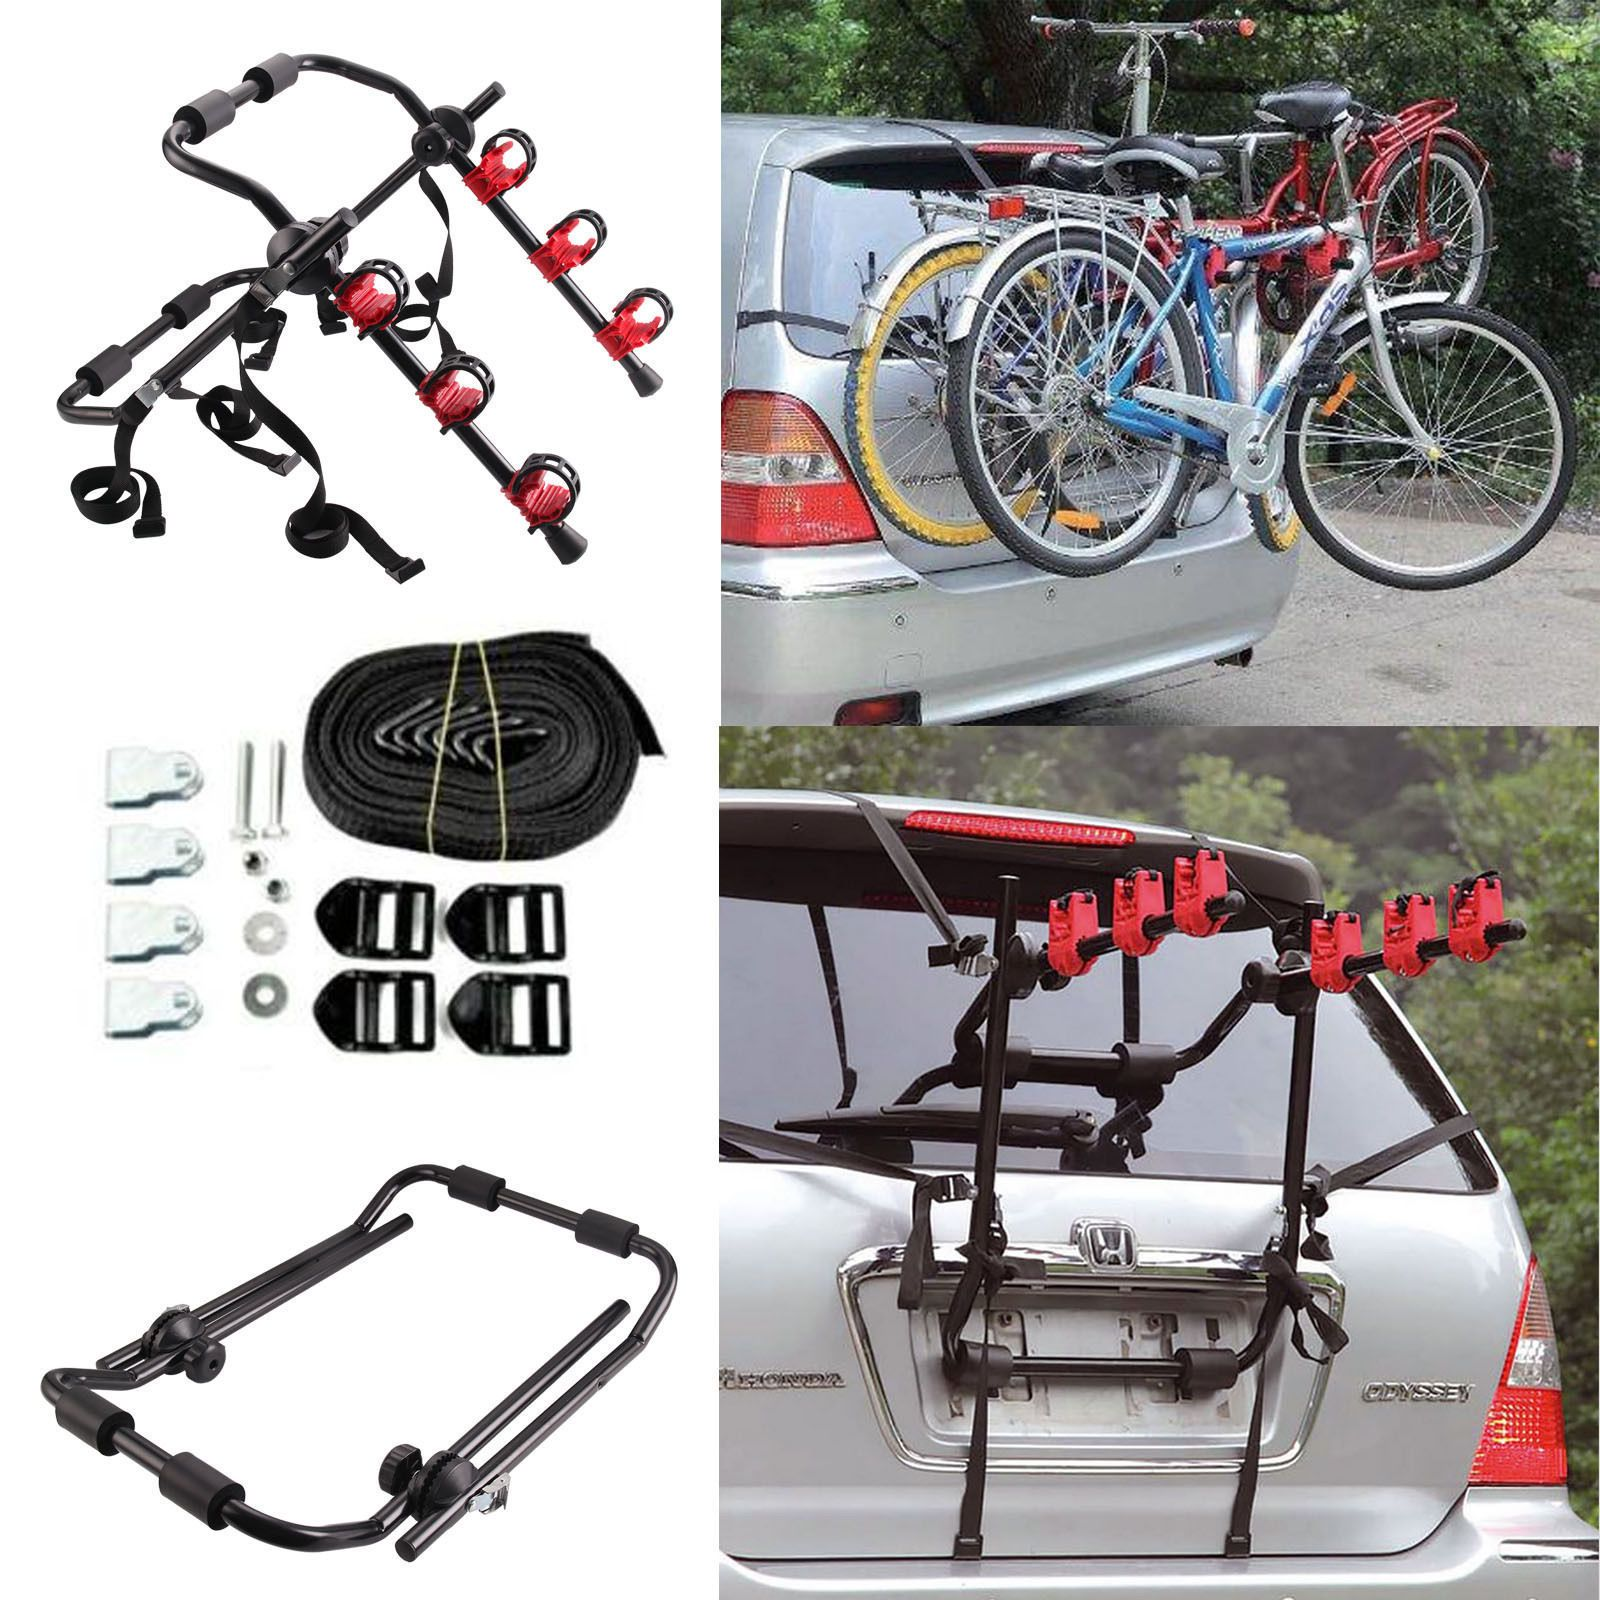 p carrier bracket anti bicycle car lock thief rack antithief photo roof for racks with